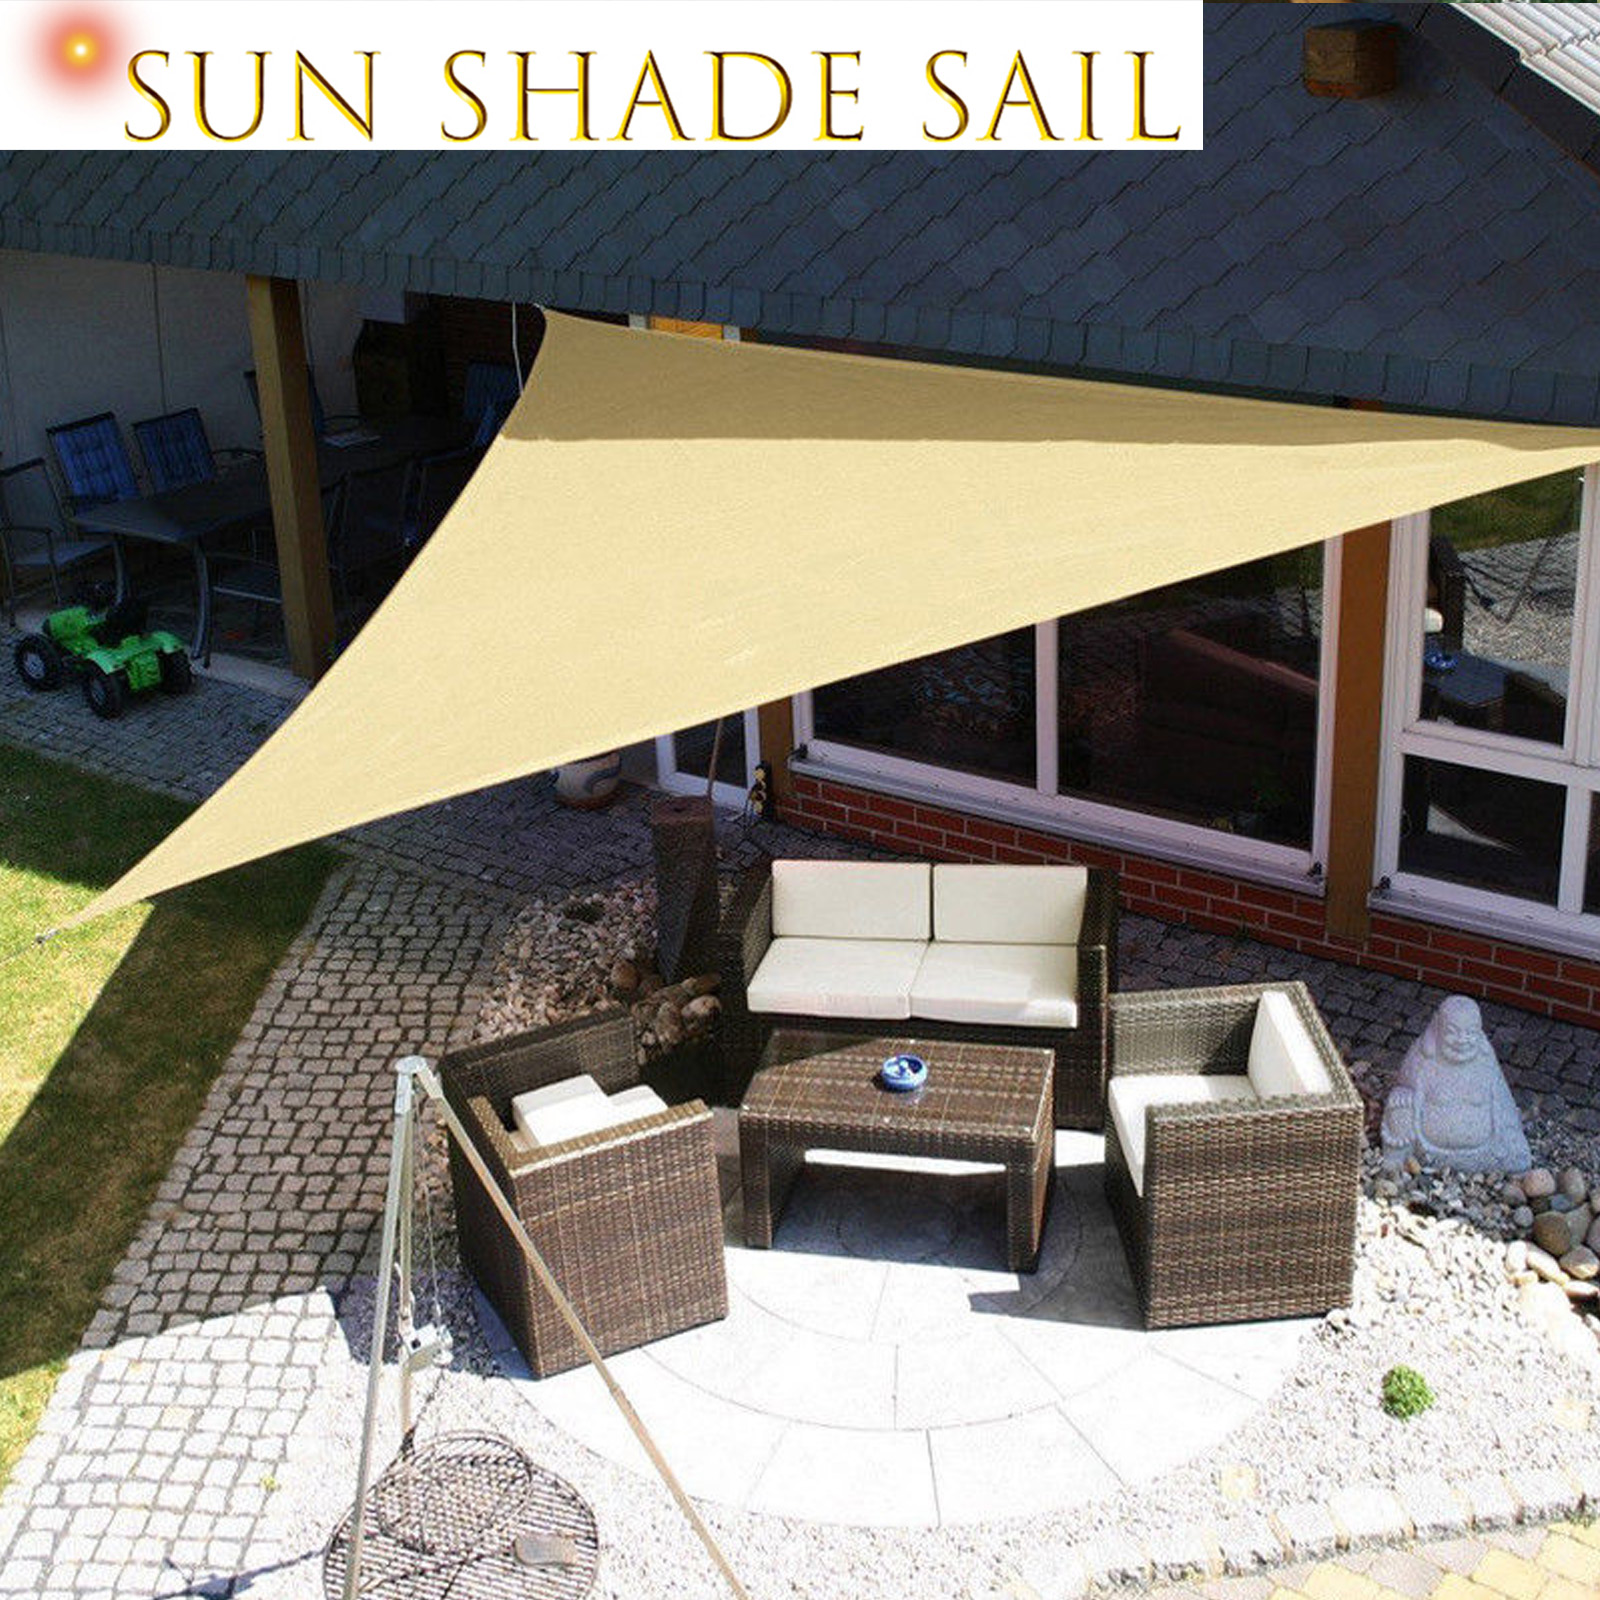 Details About Clic Waterproof Sun Shade Sail Summer Canopy Visor Shelter Garden Triangle 3m